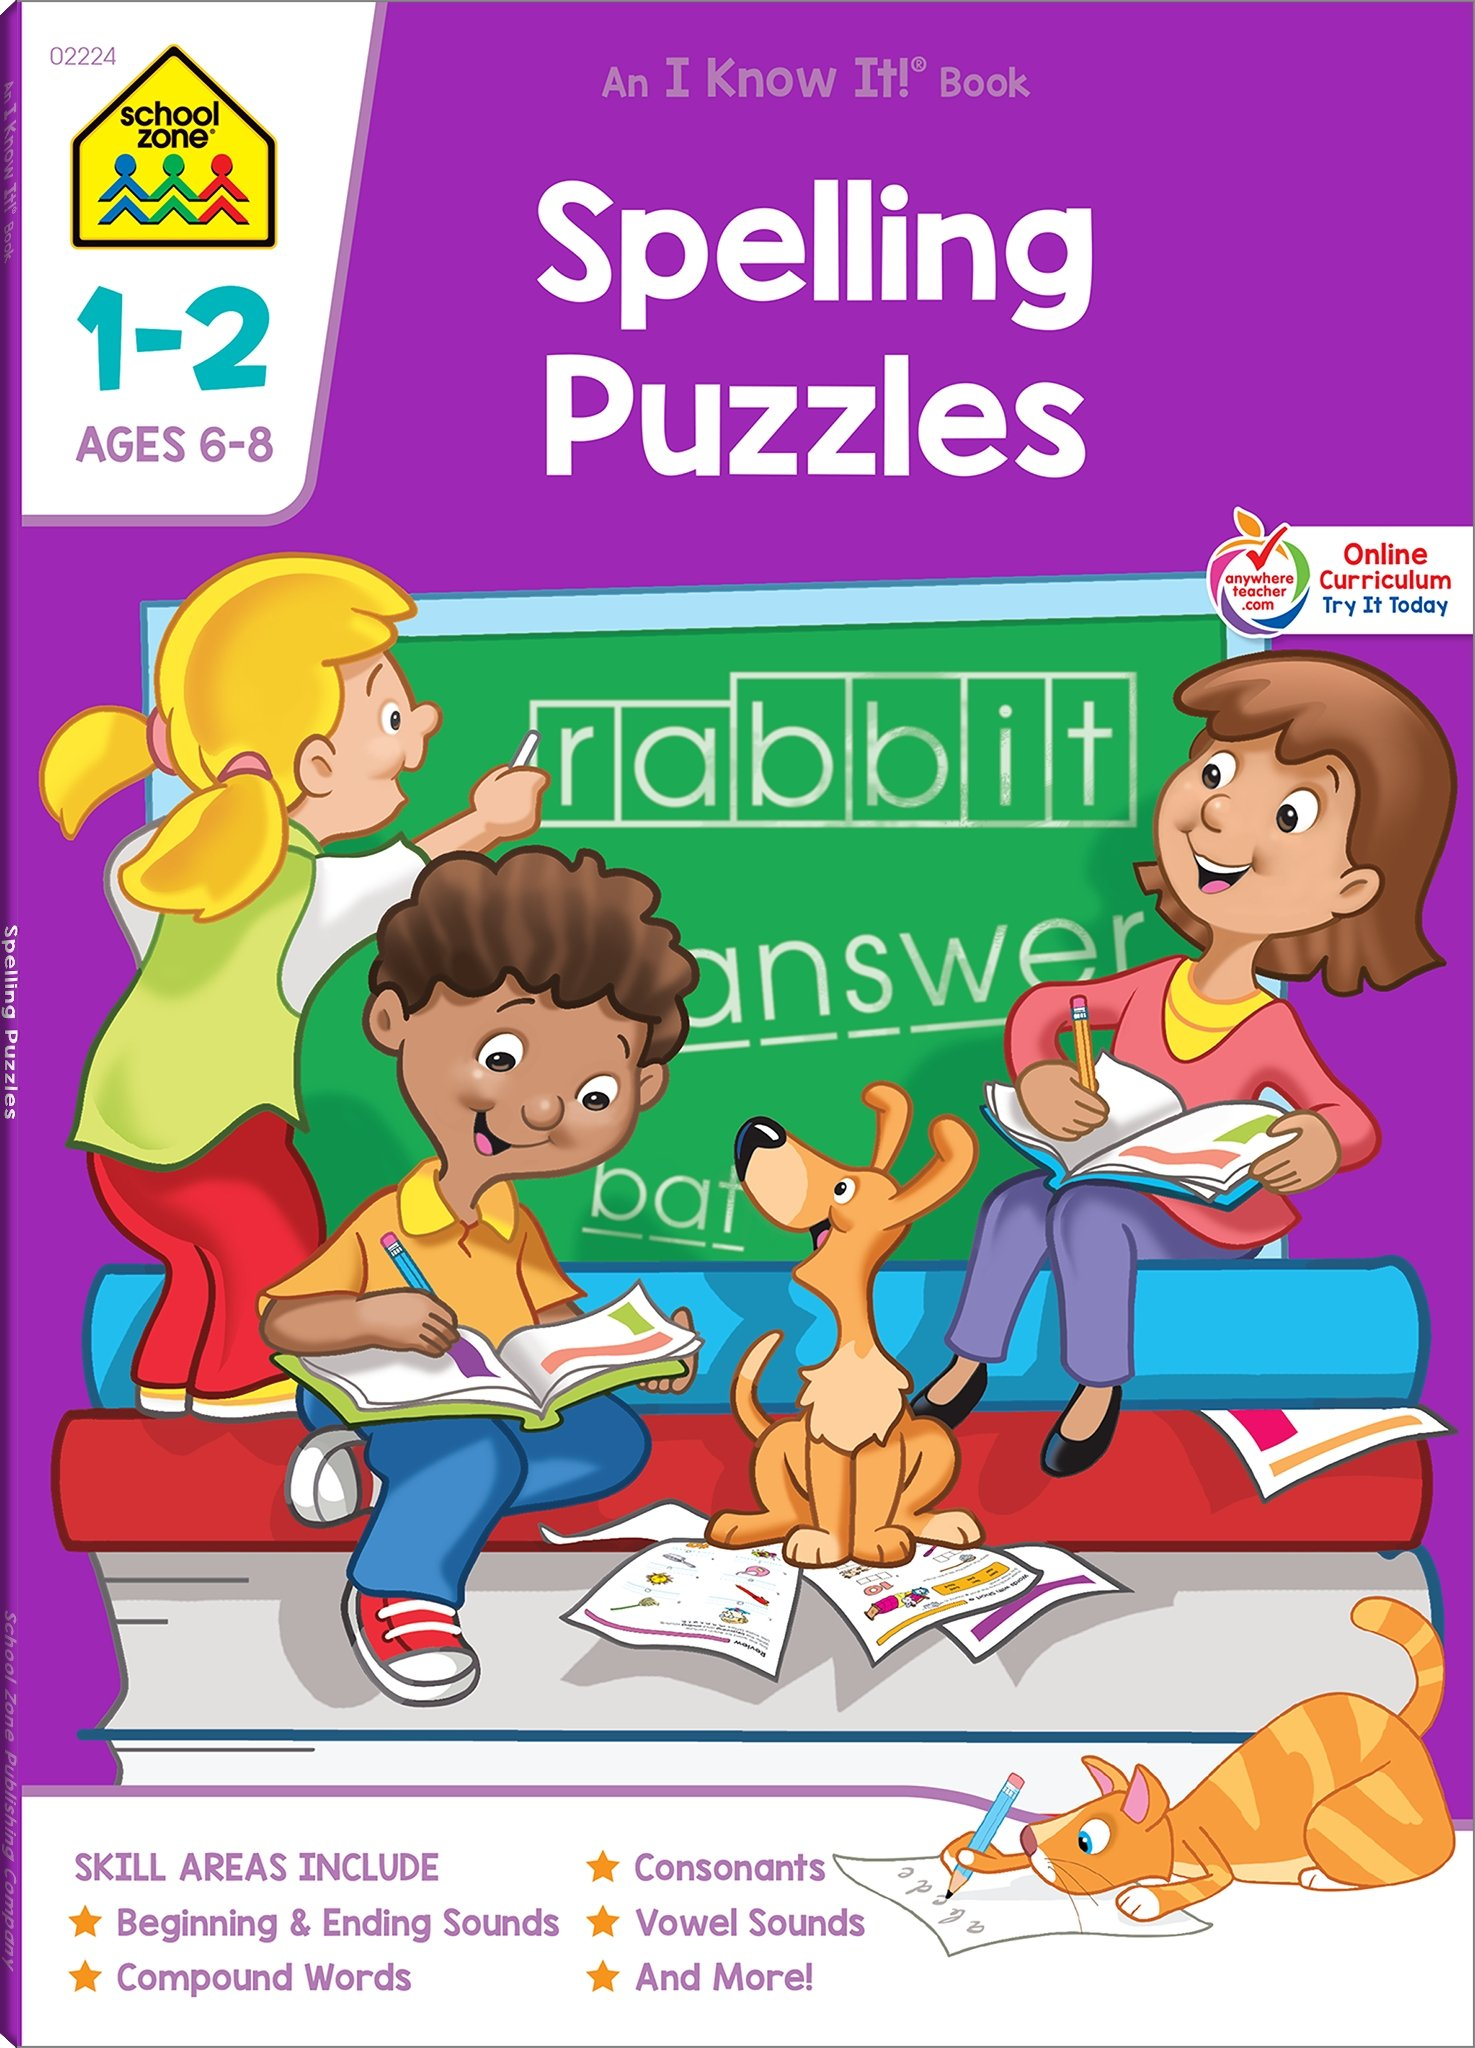 Download School Zone - Spelling Puzzles 1-2 Deluxe Edition Workbook, Ages 6 to 8, Word-Picture Recognition, Beginning Sounds, Ending Sounds, and More (School Zone's I Know It!) PDF